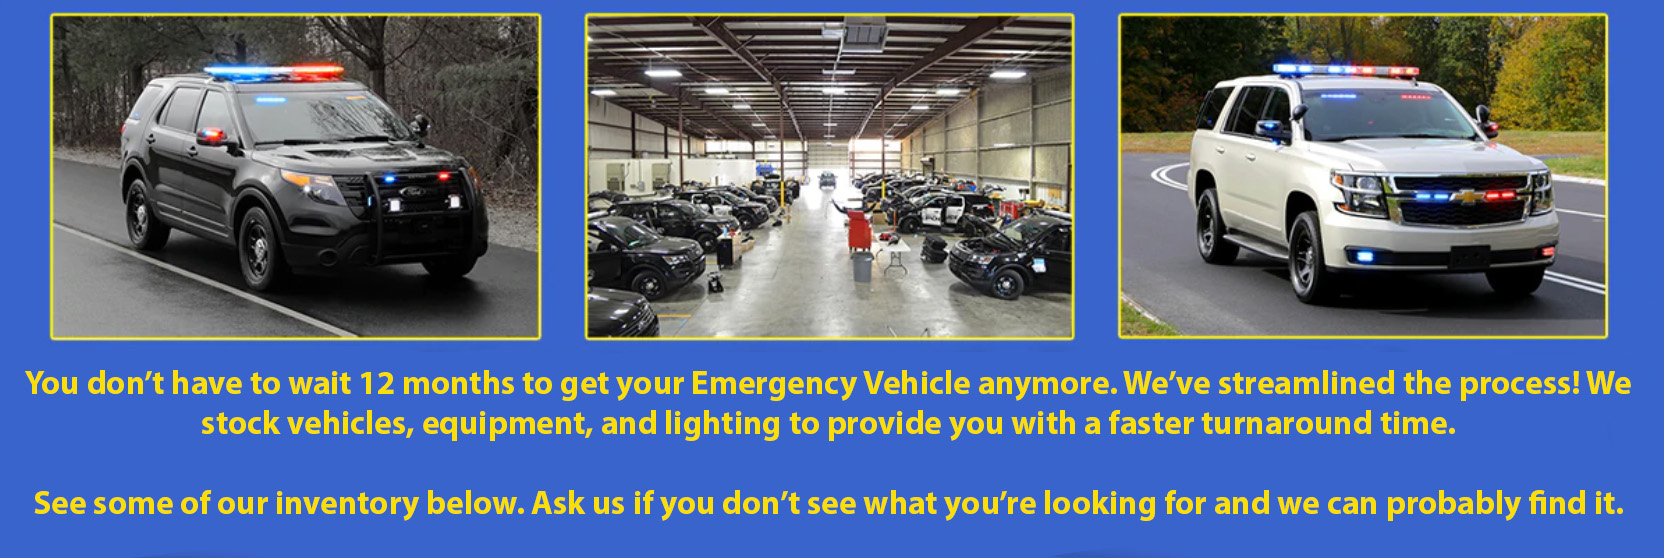 law-enforcement-vehicles-for-sale-with-lights-sirens-and-equipment-turnkeys-2.jpg